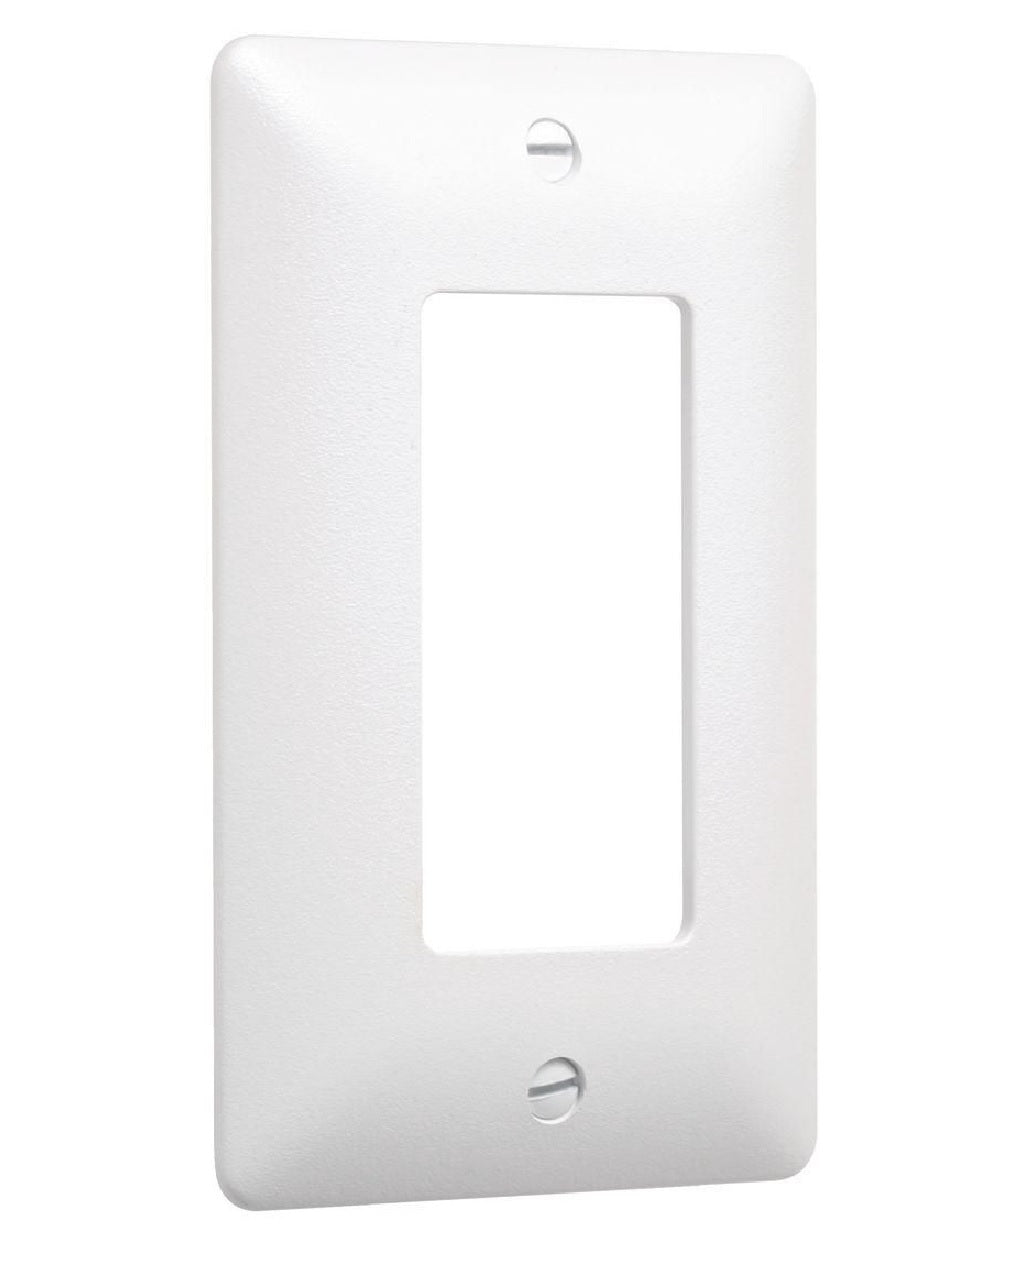 Taymac 5000W Paintable 1 Gang Masque Wall Plate Cover, White